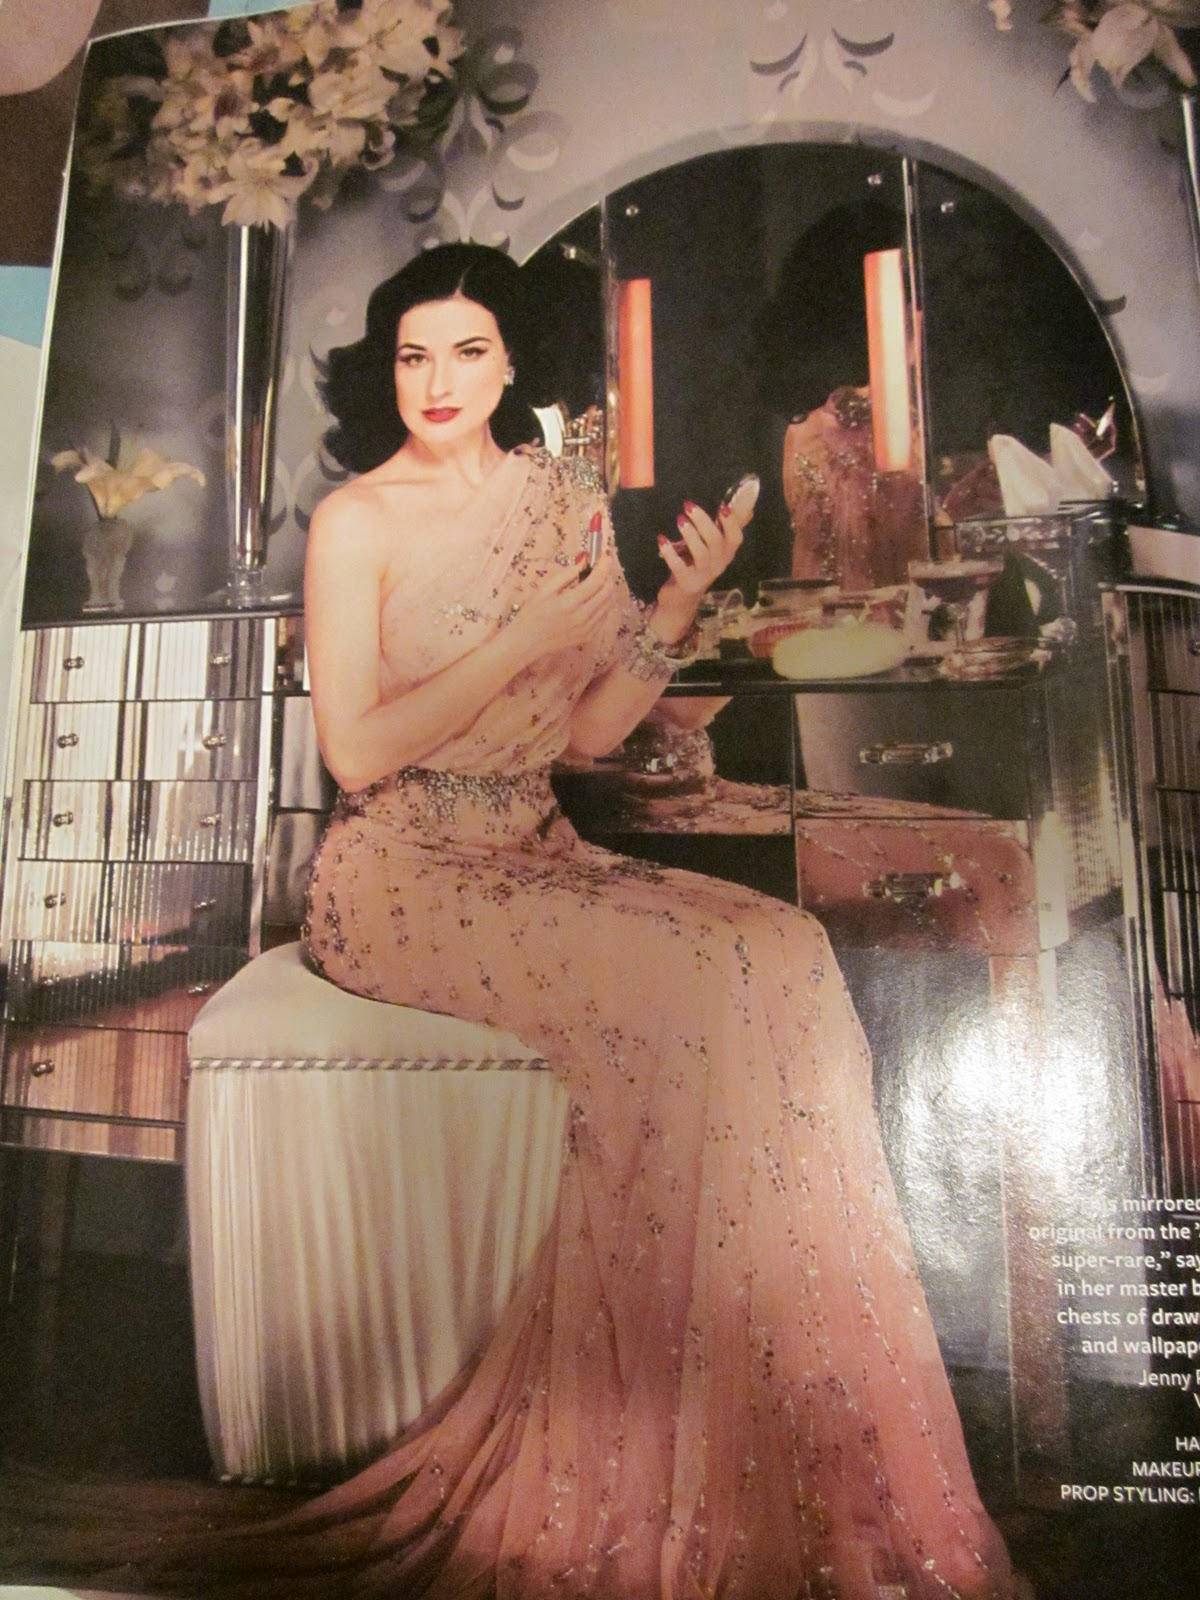 Dita Von Teese House Outside The Image